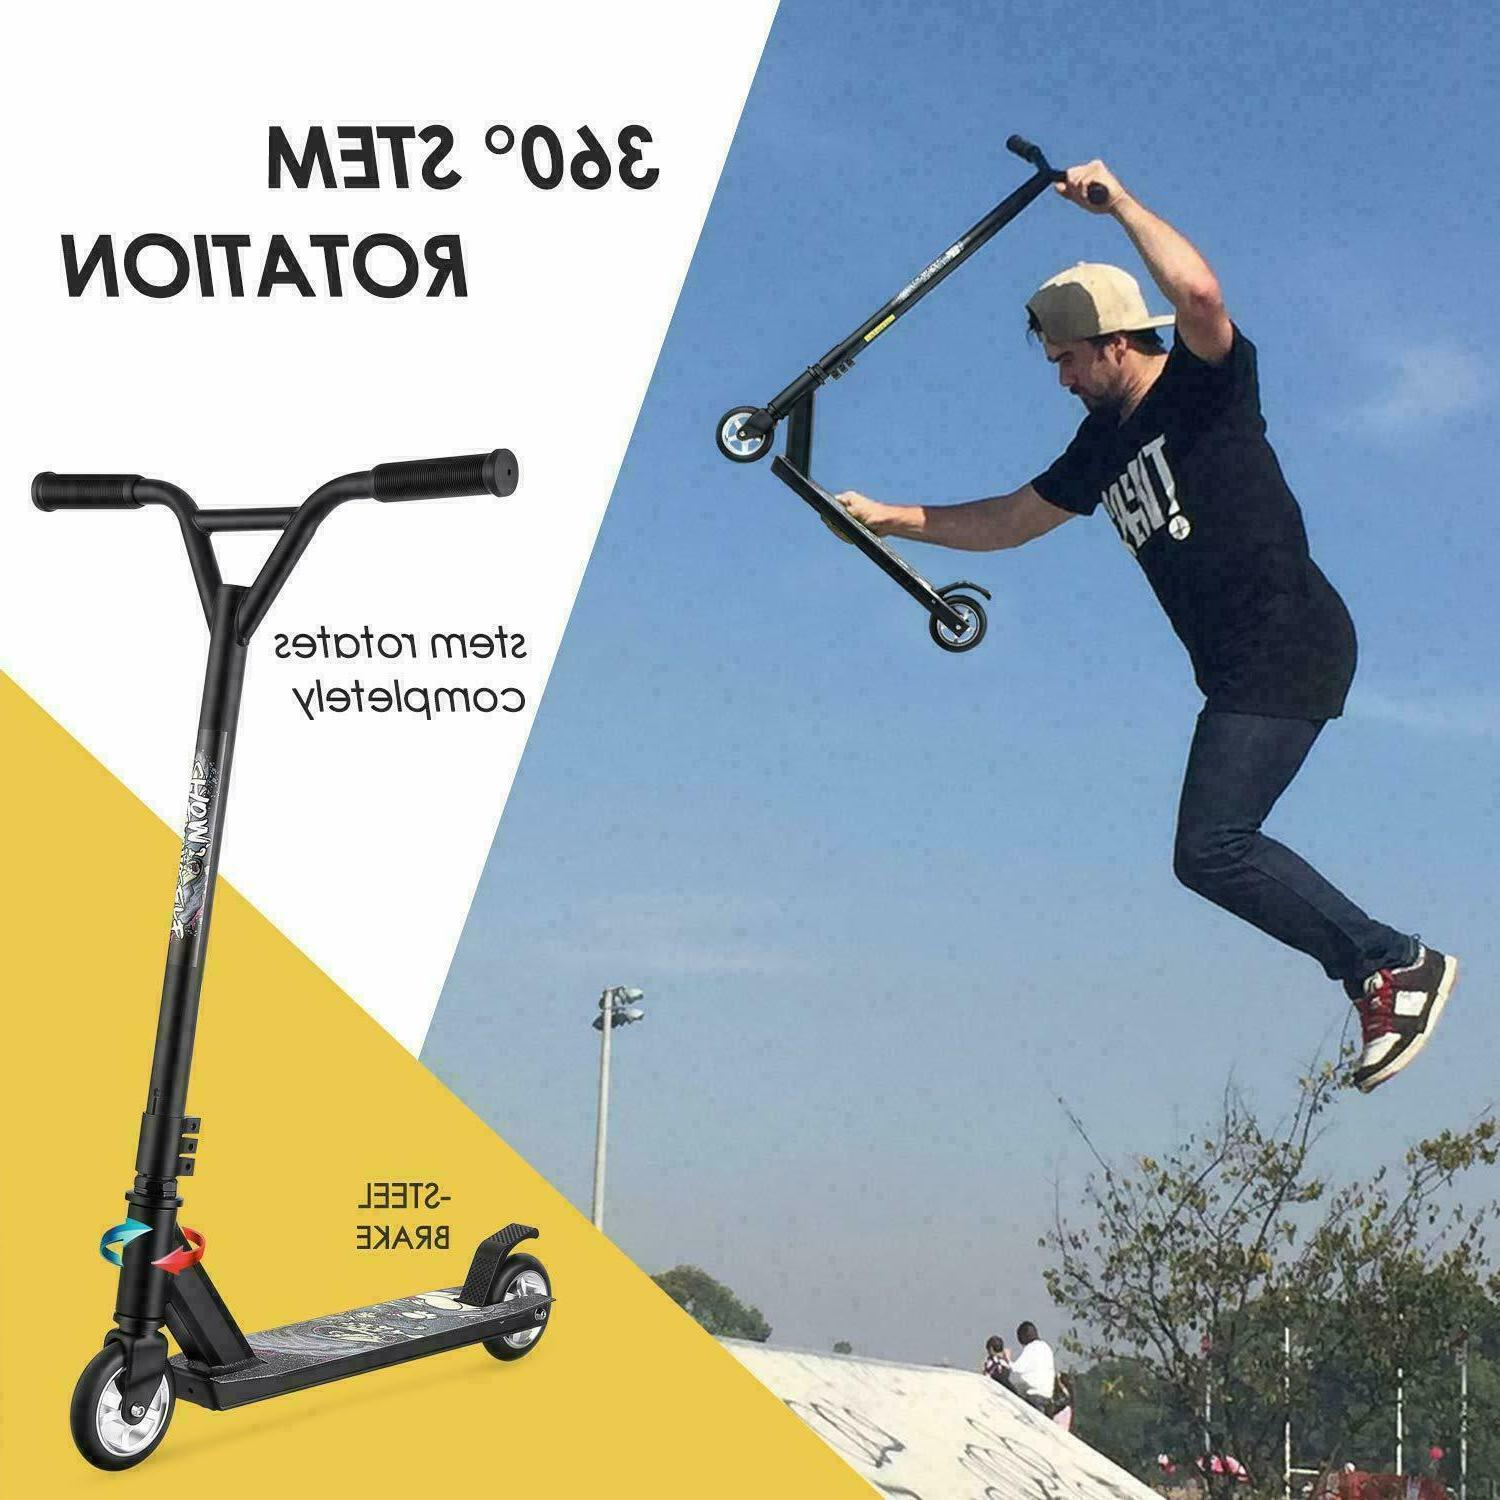 pro scooter for adults teens entry stunt